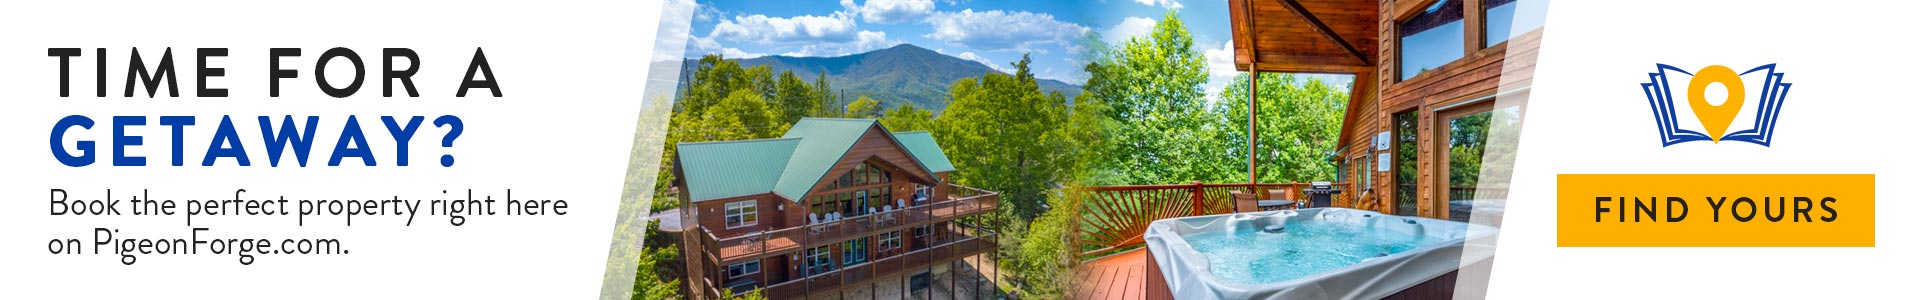 Time for a getaway? Click to book the perfect property right here on PigeonForge.com.